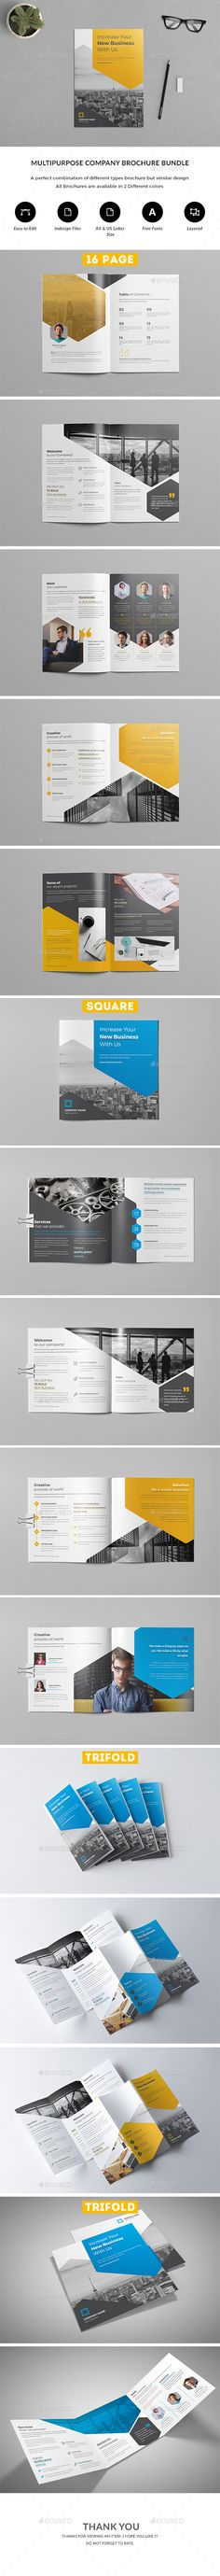 #Company Profile #Brochure Bundle - #Corporate Brochures